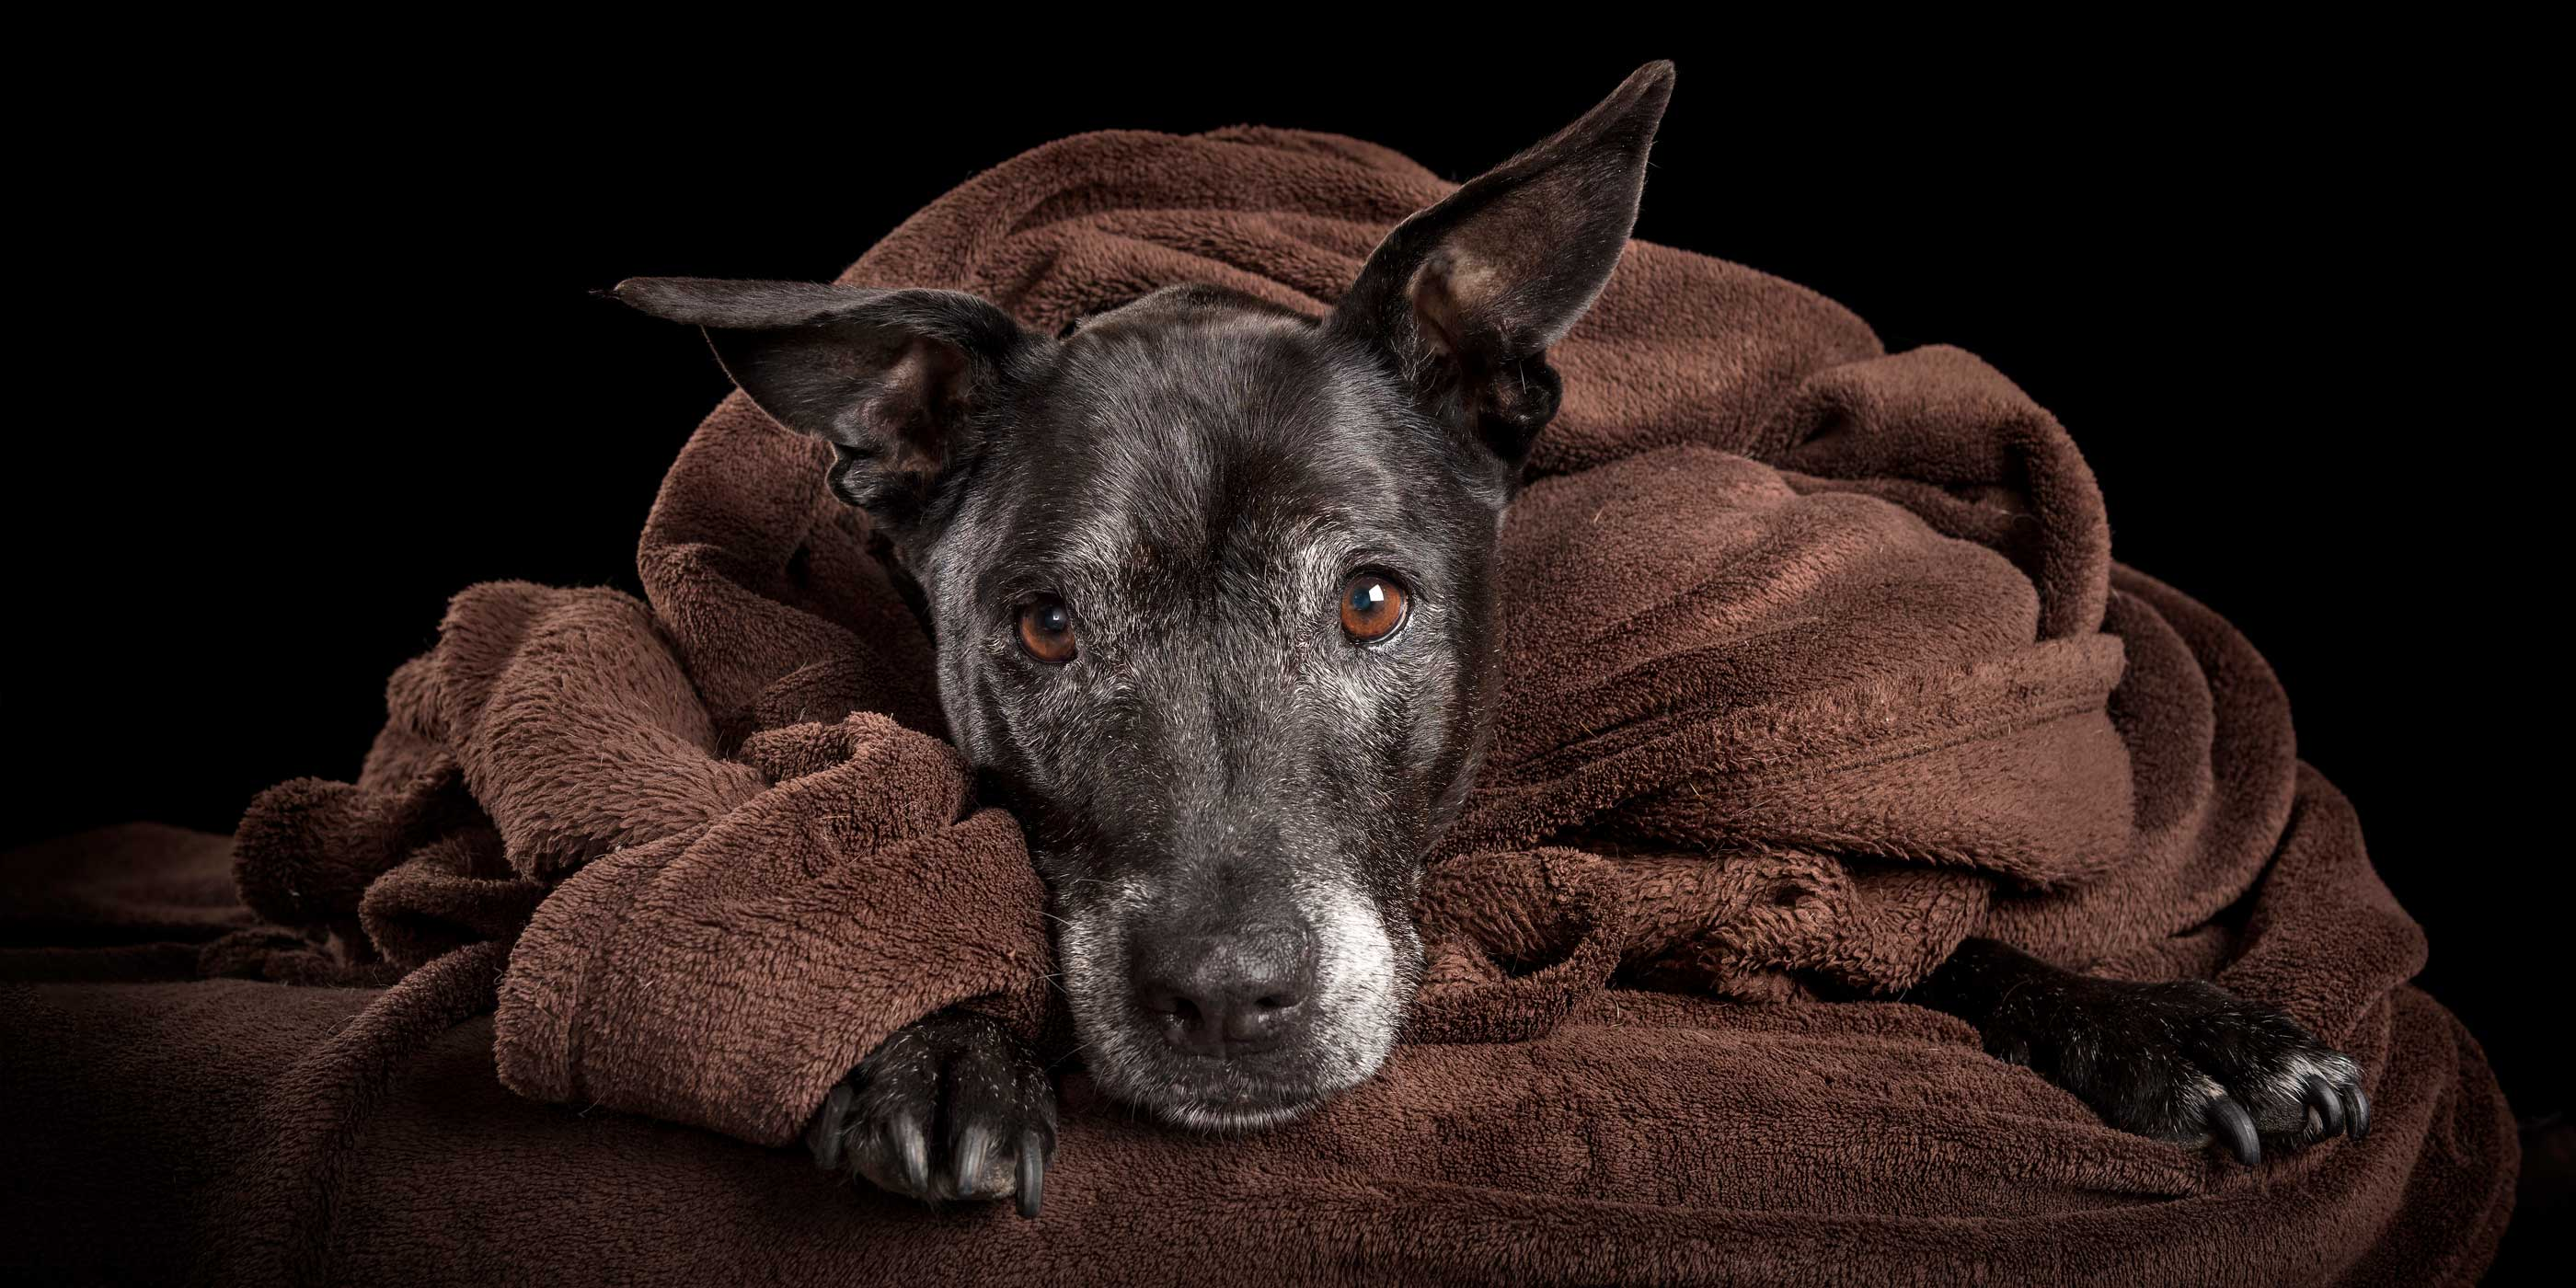 black staffy cross wrapped up in brown snuggle rug